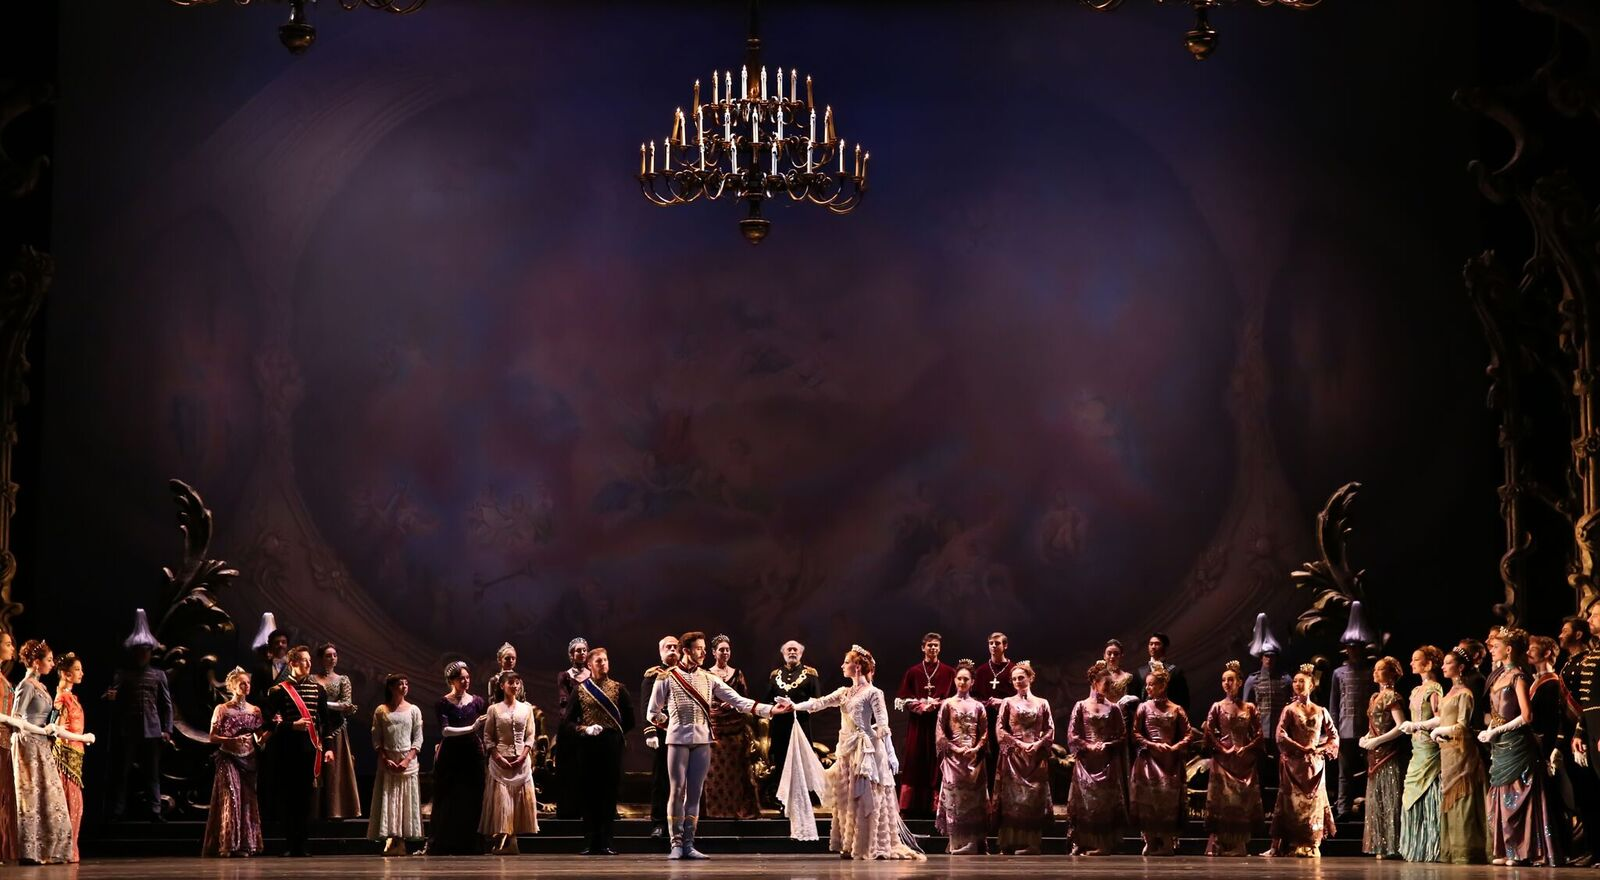 BWW Review: The Houston Ballet's season opener MAYERLING Brings Drama to Life at the Hobby Center for the Performing Arts